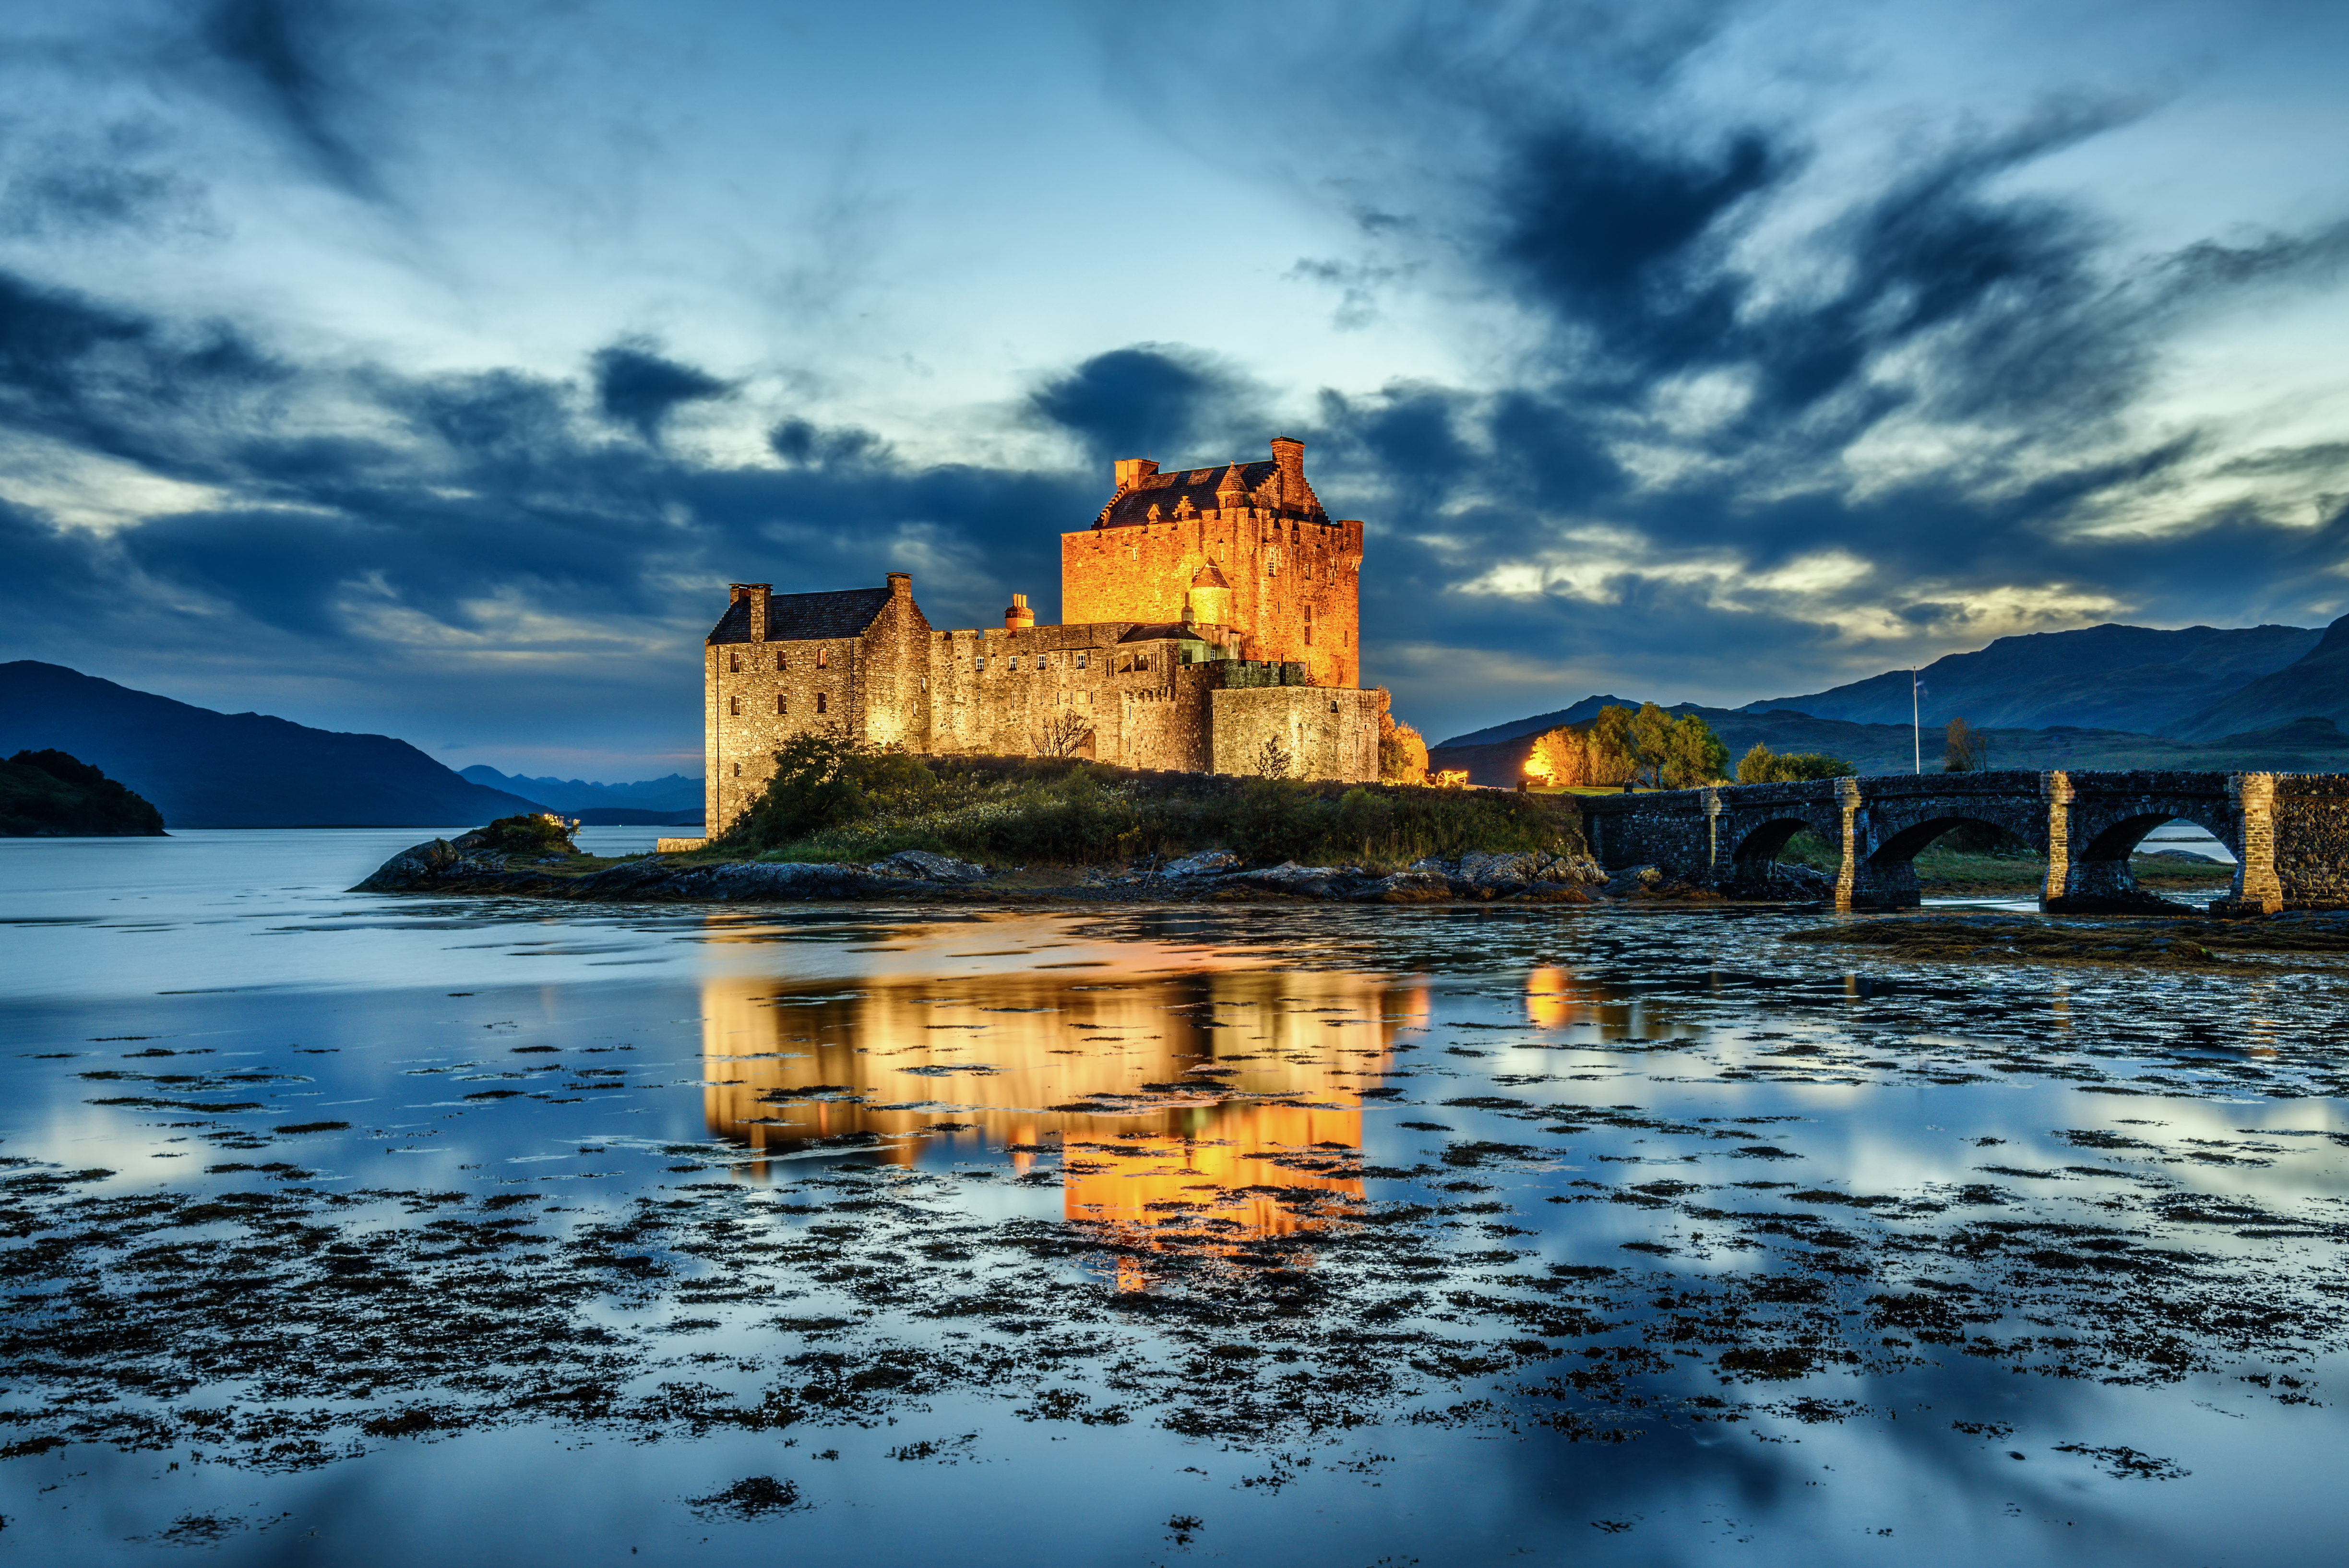 Eilean Donan Castle during blue hour after sunset. Eilean Donan is recognised as one of the most iconic places of Scotland, United Kingdom